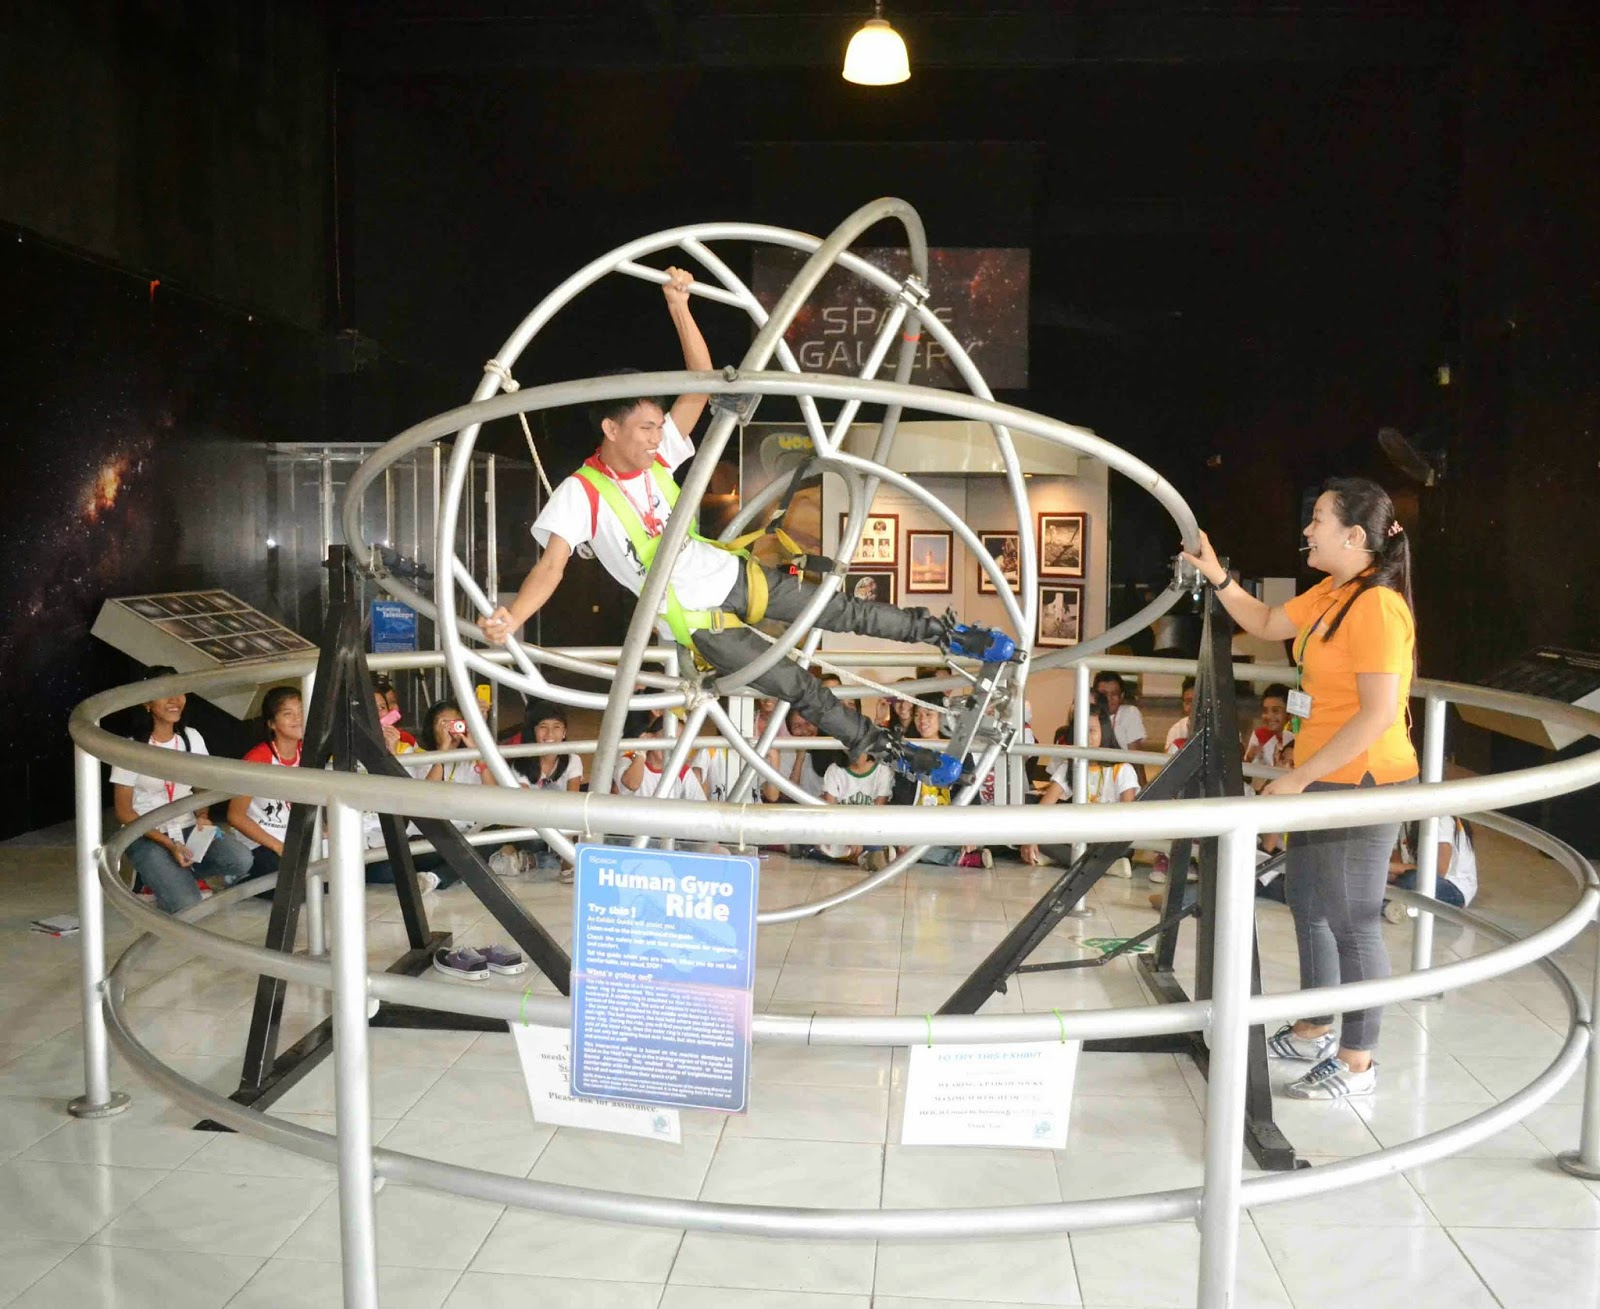 Human Gyro: Philippine Science Centrum